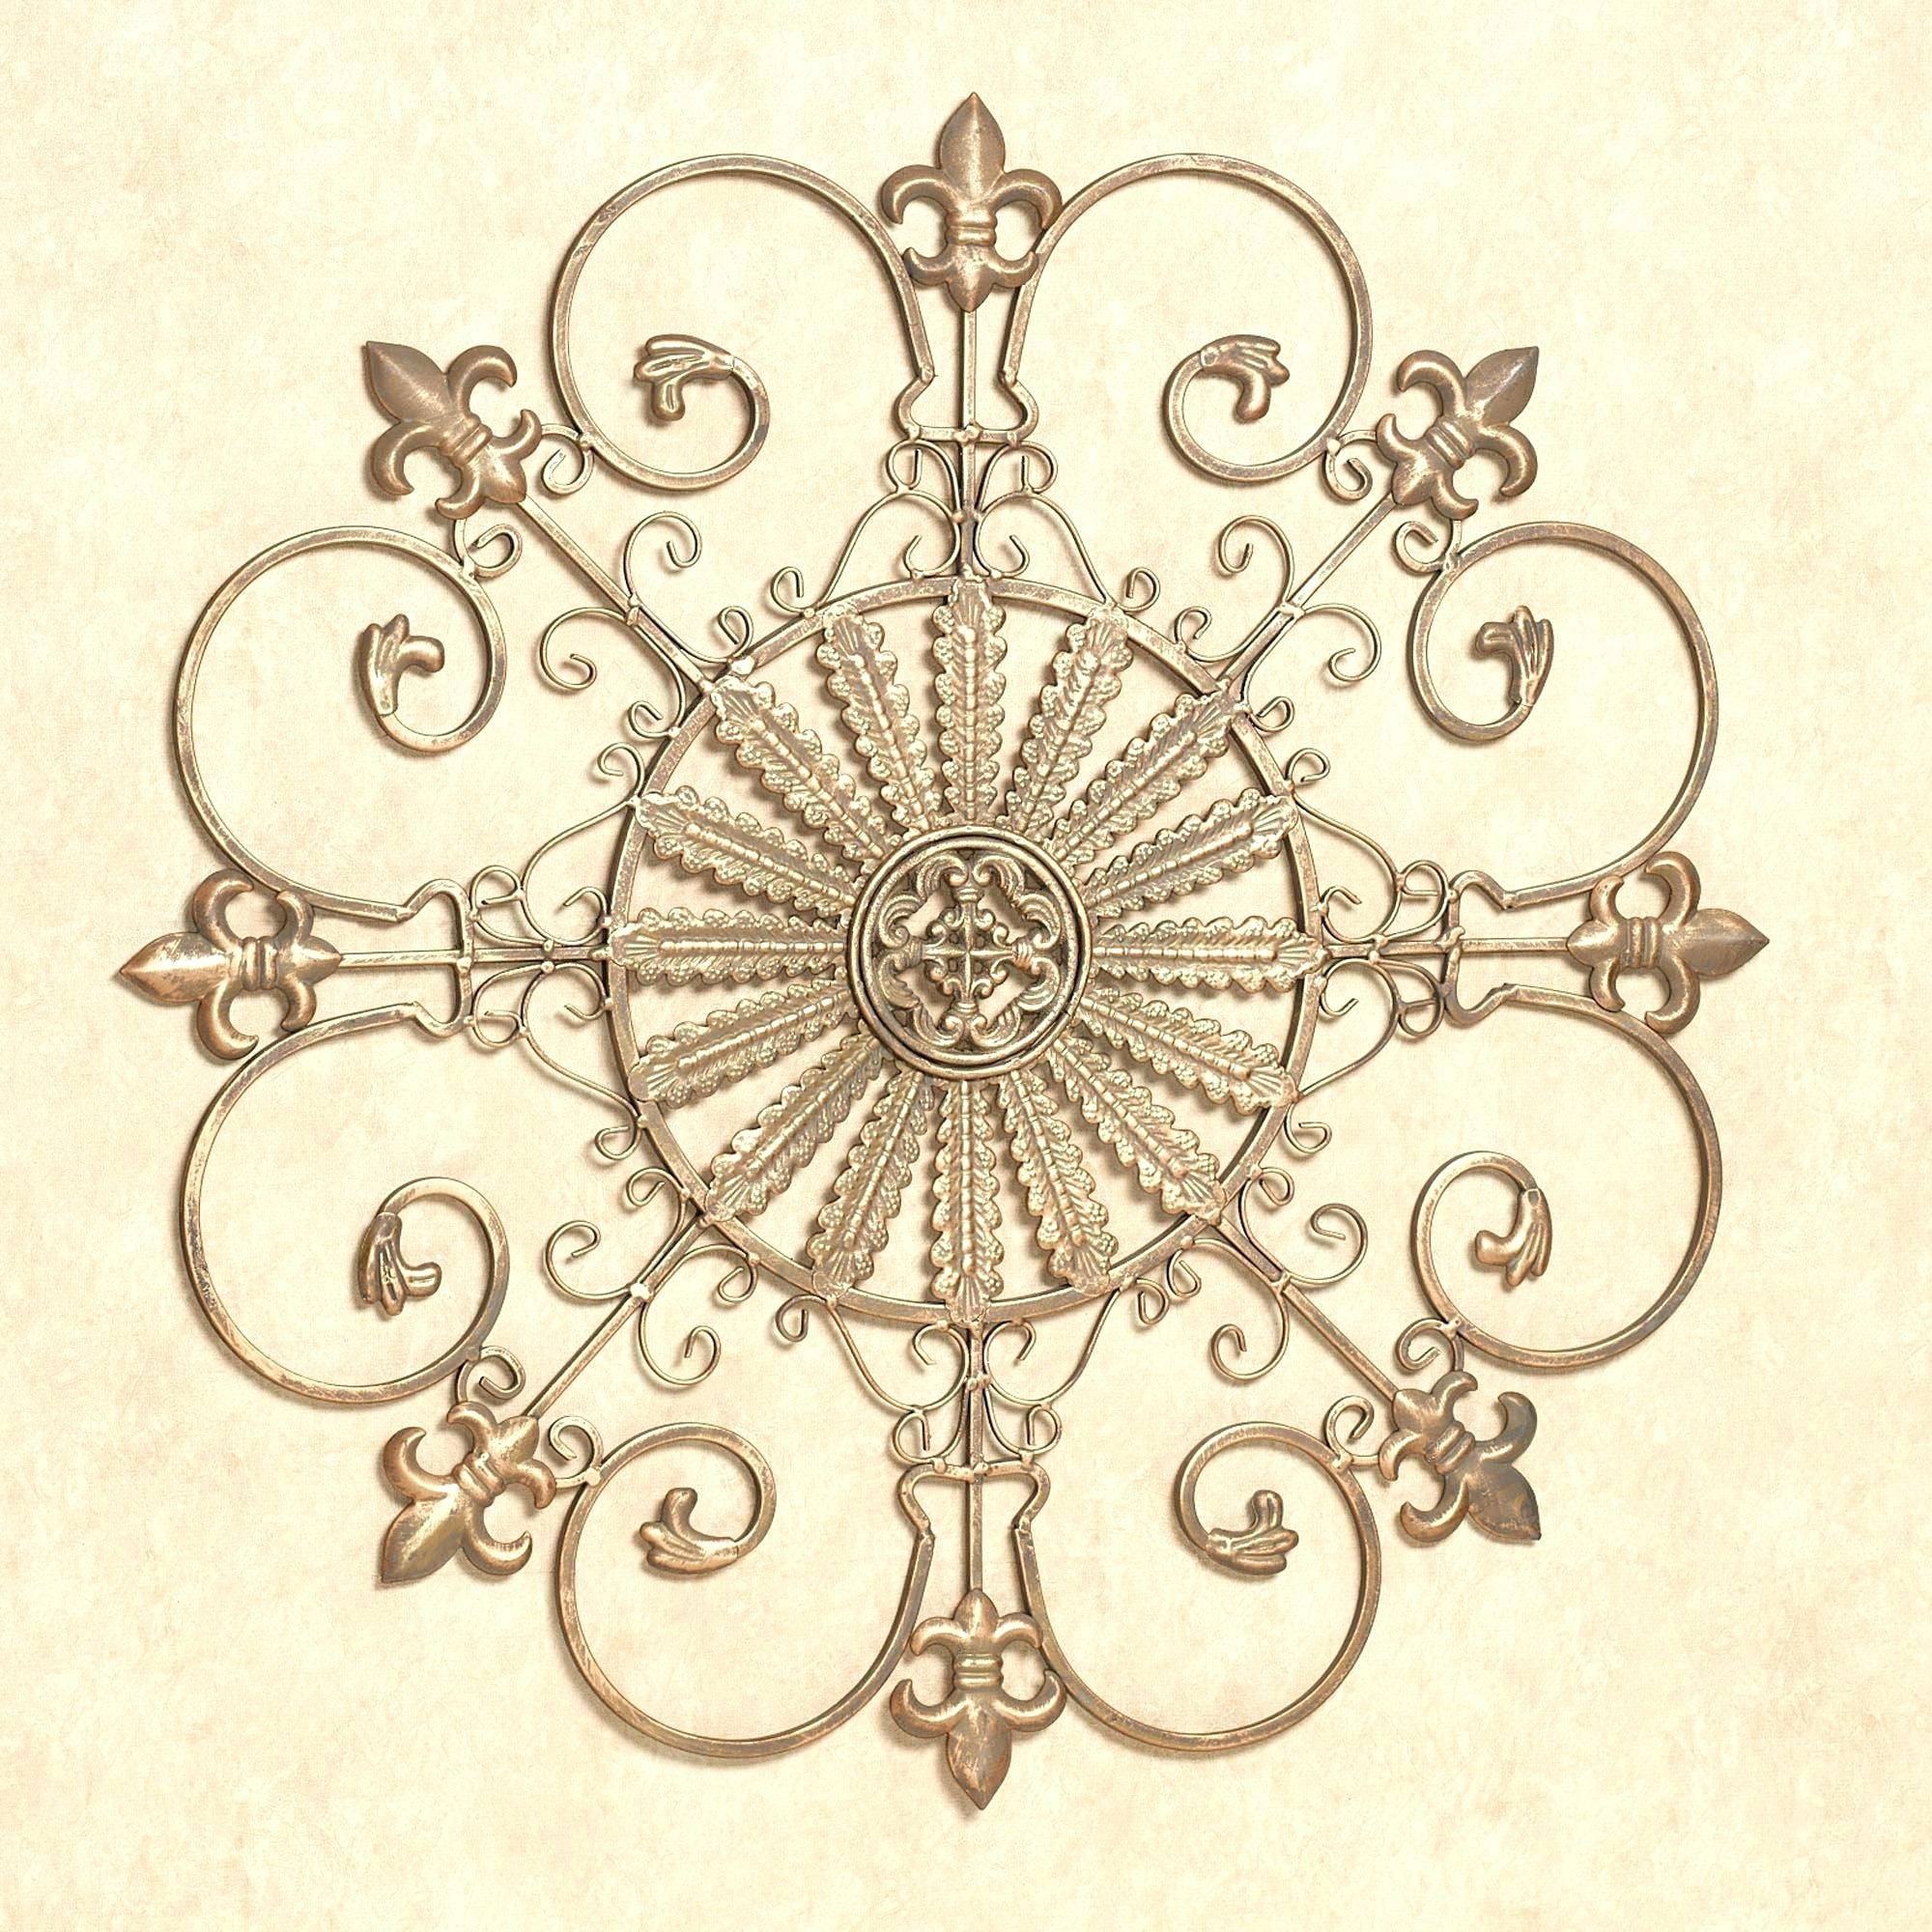 Wall Arts ~ Scroll Iron Wall Art Round Metal Scroll Wall Art Round In Current Large Round Metal Wall Art (View 18 of 20)